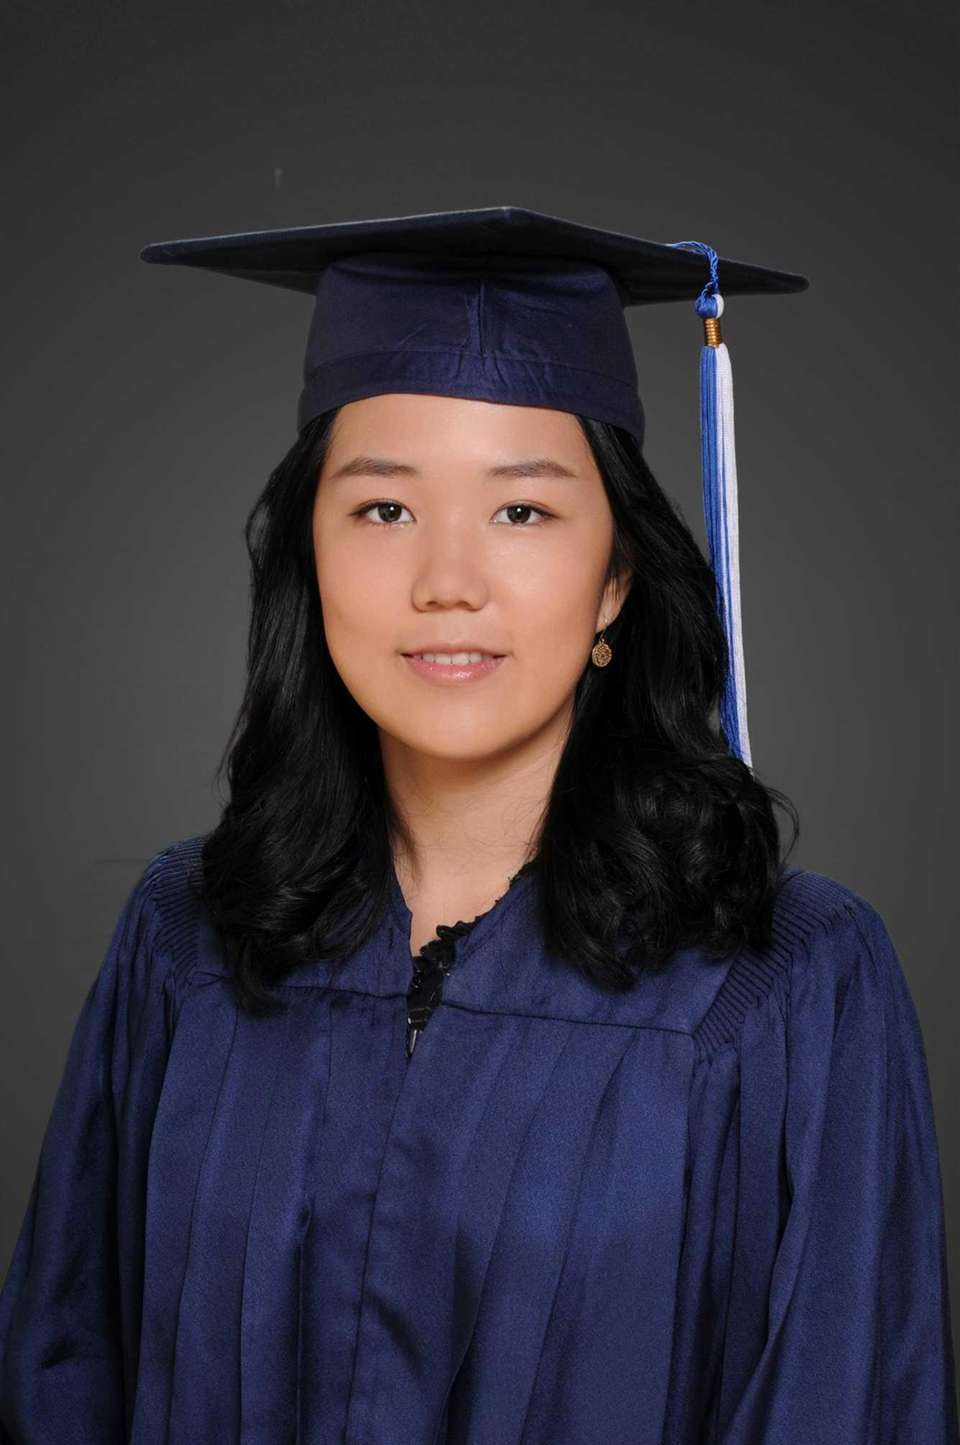 YUJIN KIM, STONY BROOK SCHOOL Hometown: Busan, Korea